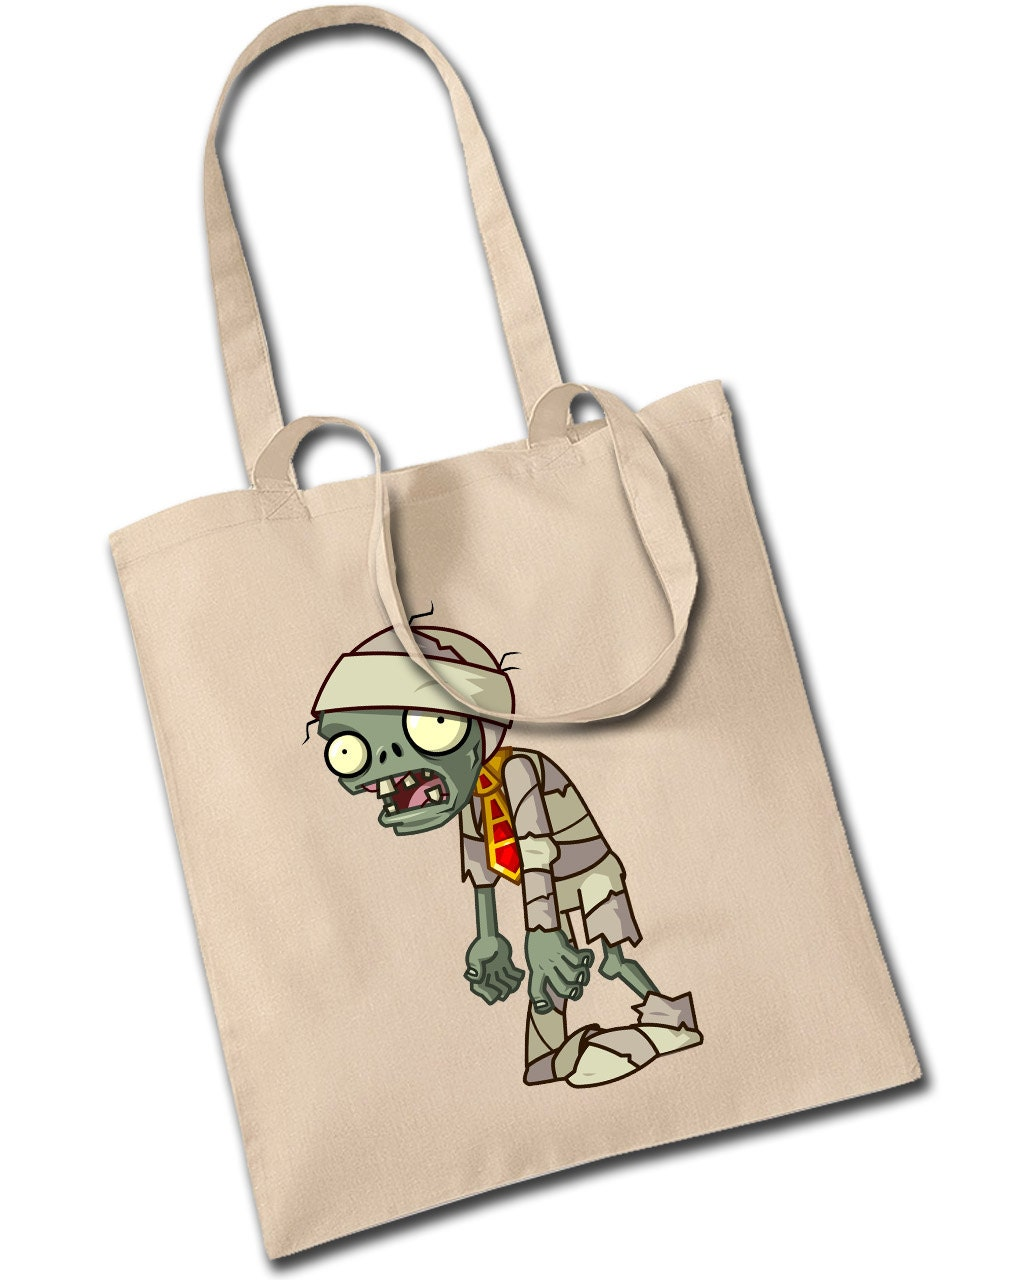 Cartoon Mummy Zombie Tote Bag Trick Or Treat Sweet Bag My First Halloween Retro Cool Kids Pumpkin Novelty Fancy Dress Shoulder Bag Handbag